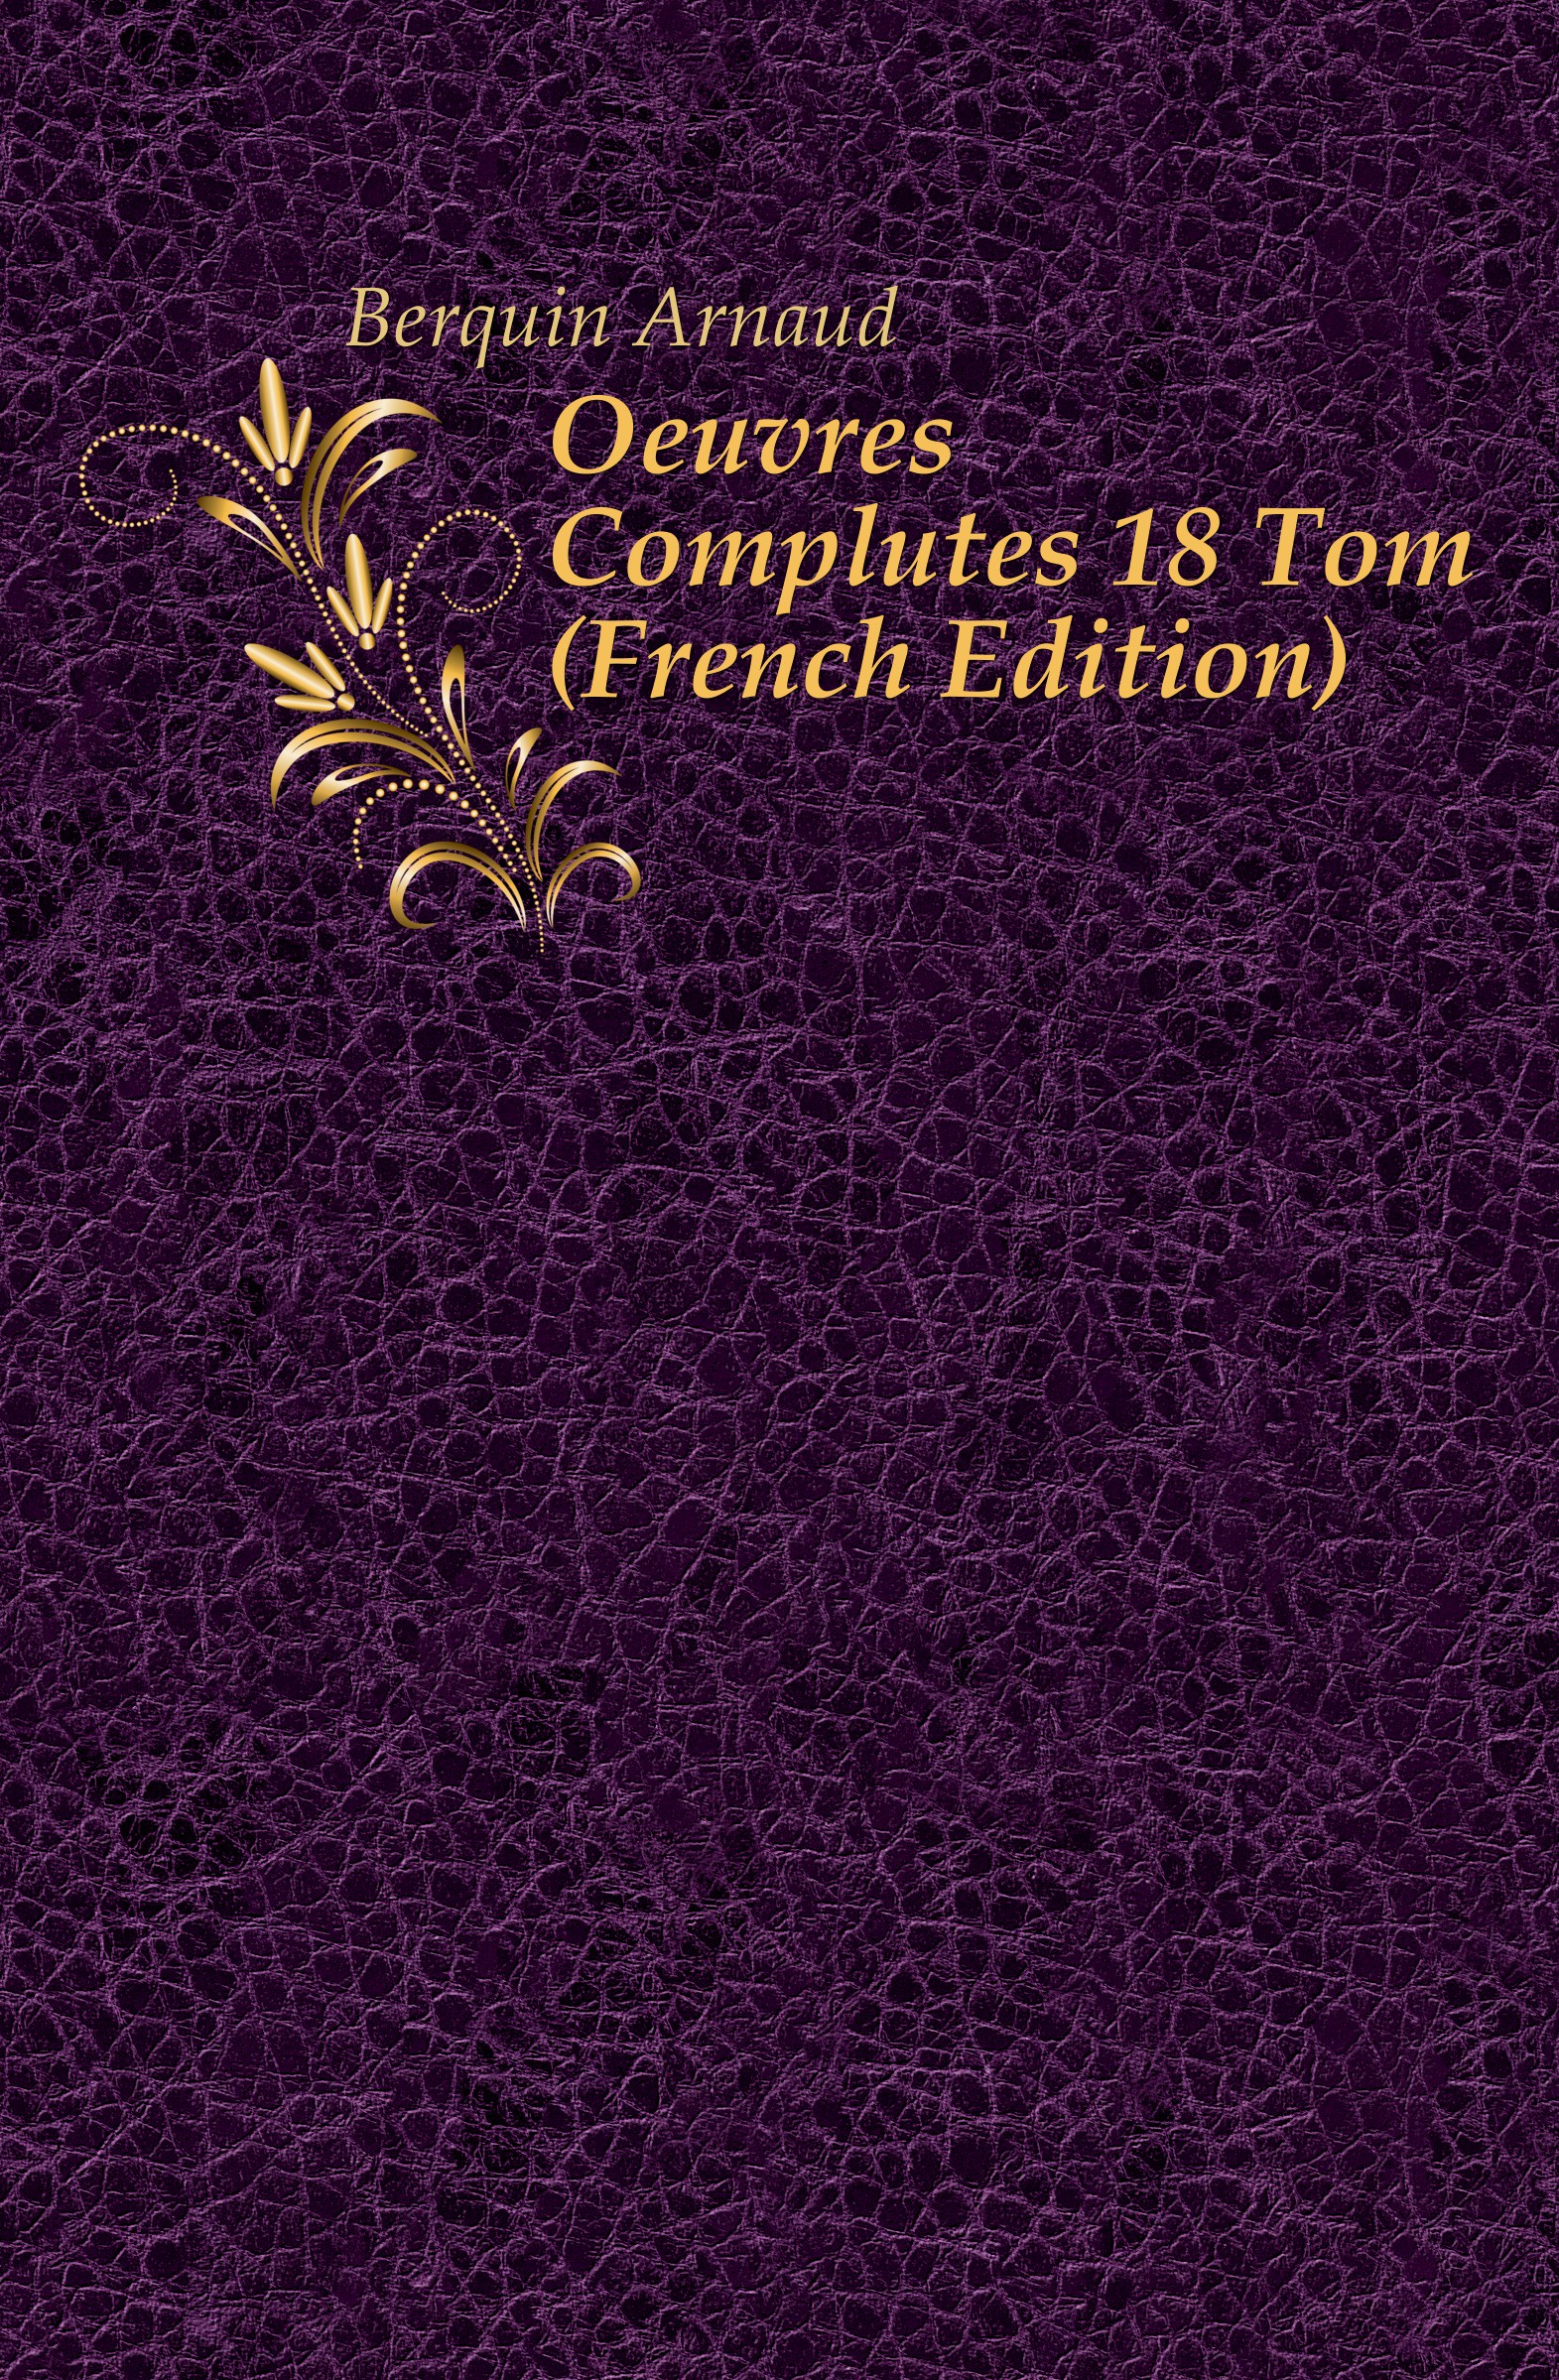 Berquin Arnaud Oeuvres Completes 18 Tom (French Edition)